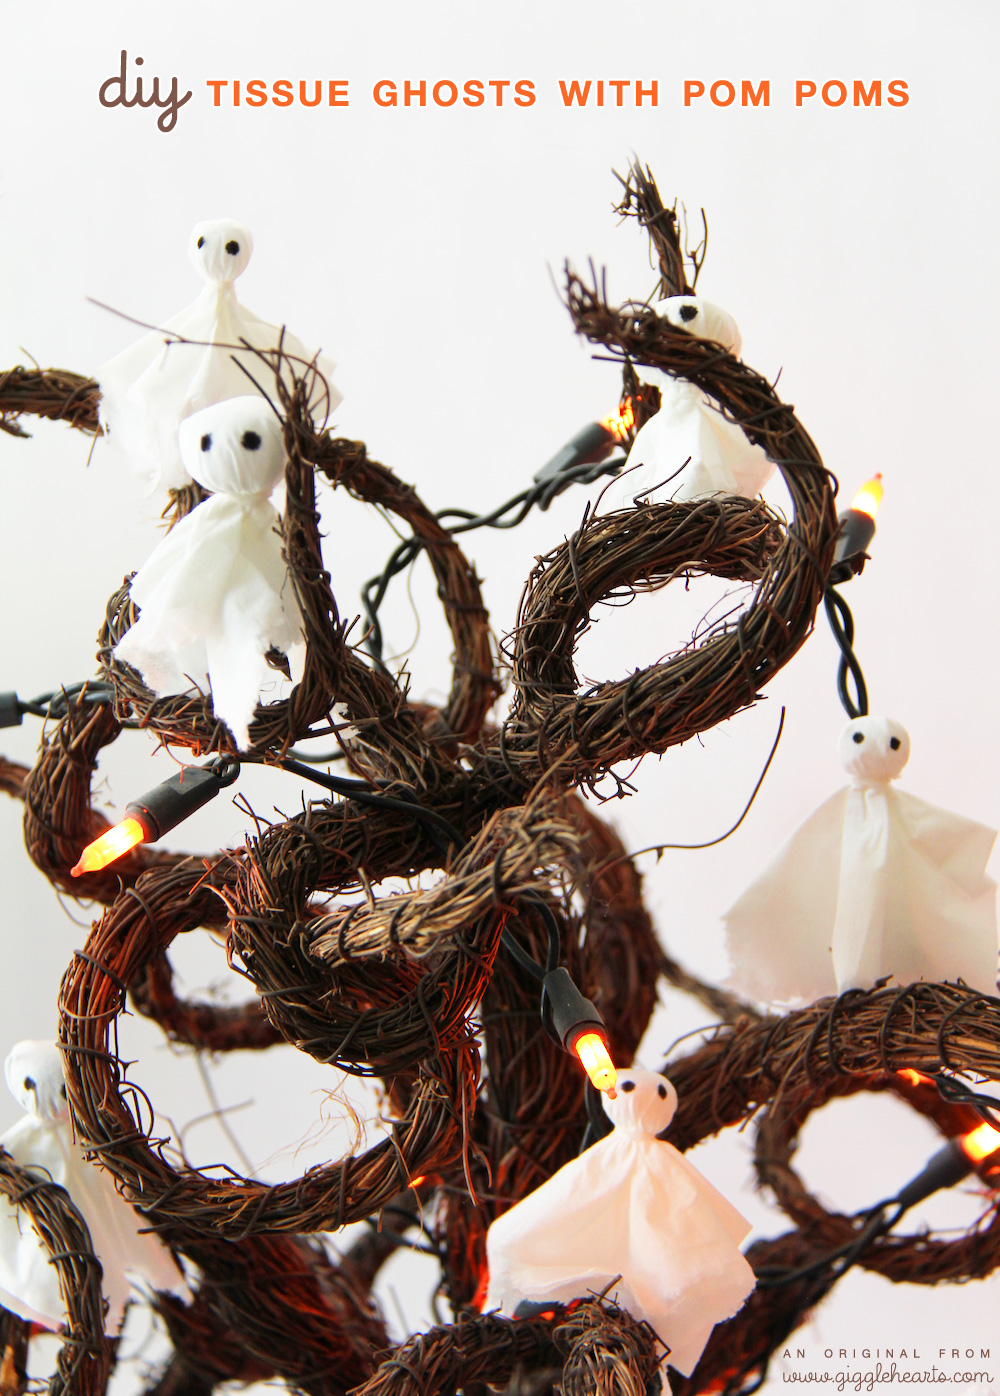 Fun Halloween Craft : DIY Tissue Ghosts with Pom Poms and Hairties / as seen on www.GiggleHearts.com